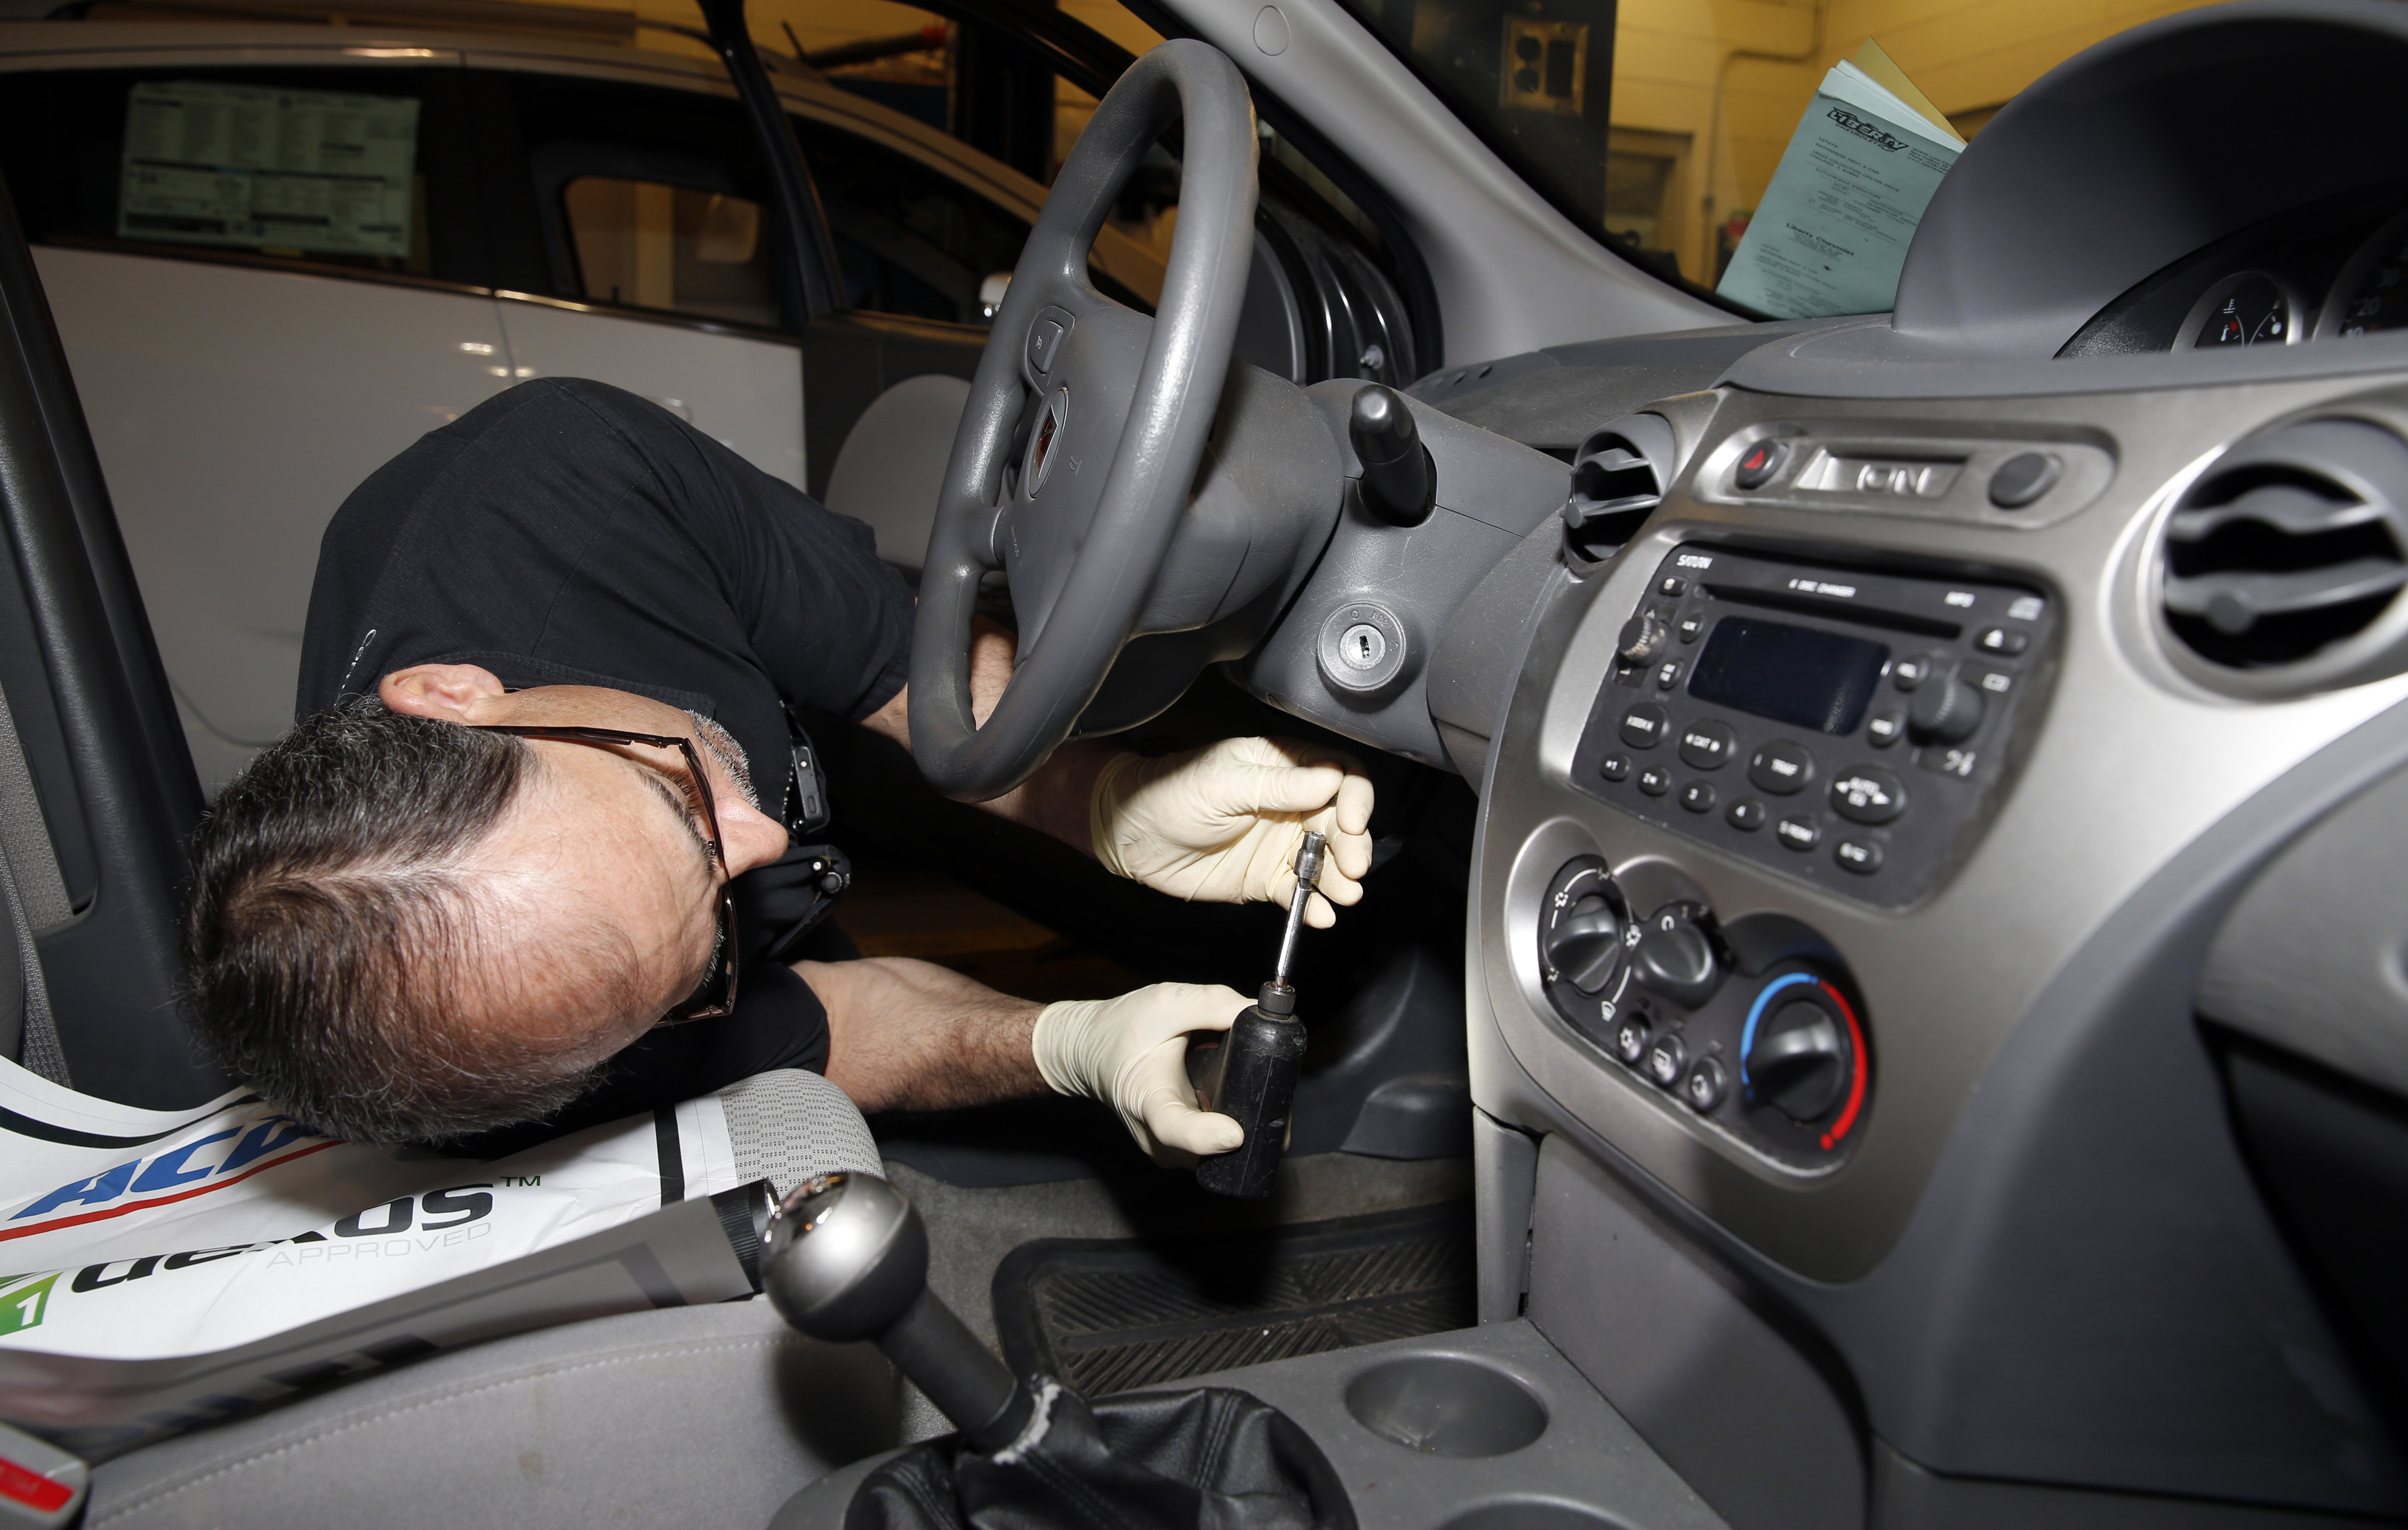 Shop foreman John Chapman performs a service recall on a General Motors Co. (GM) 2005 Saturn Ion at Liberty Chevrolet in New Hudson, Michigan, U.S., on Friday, April 25, 2014.